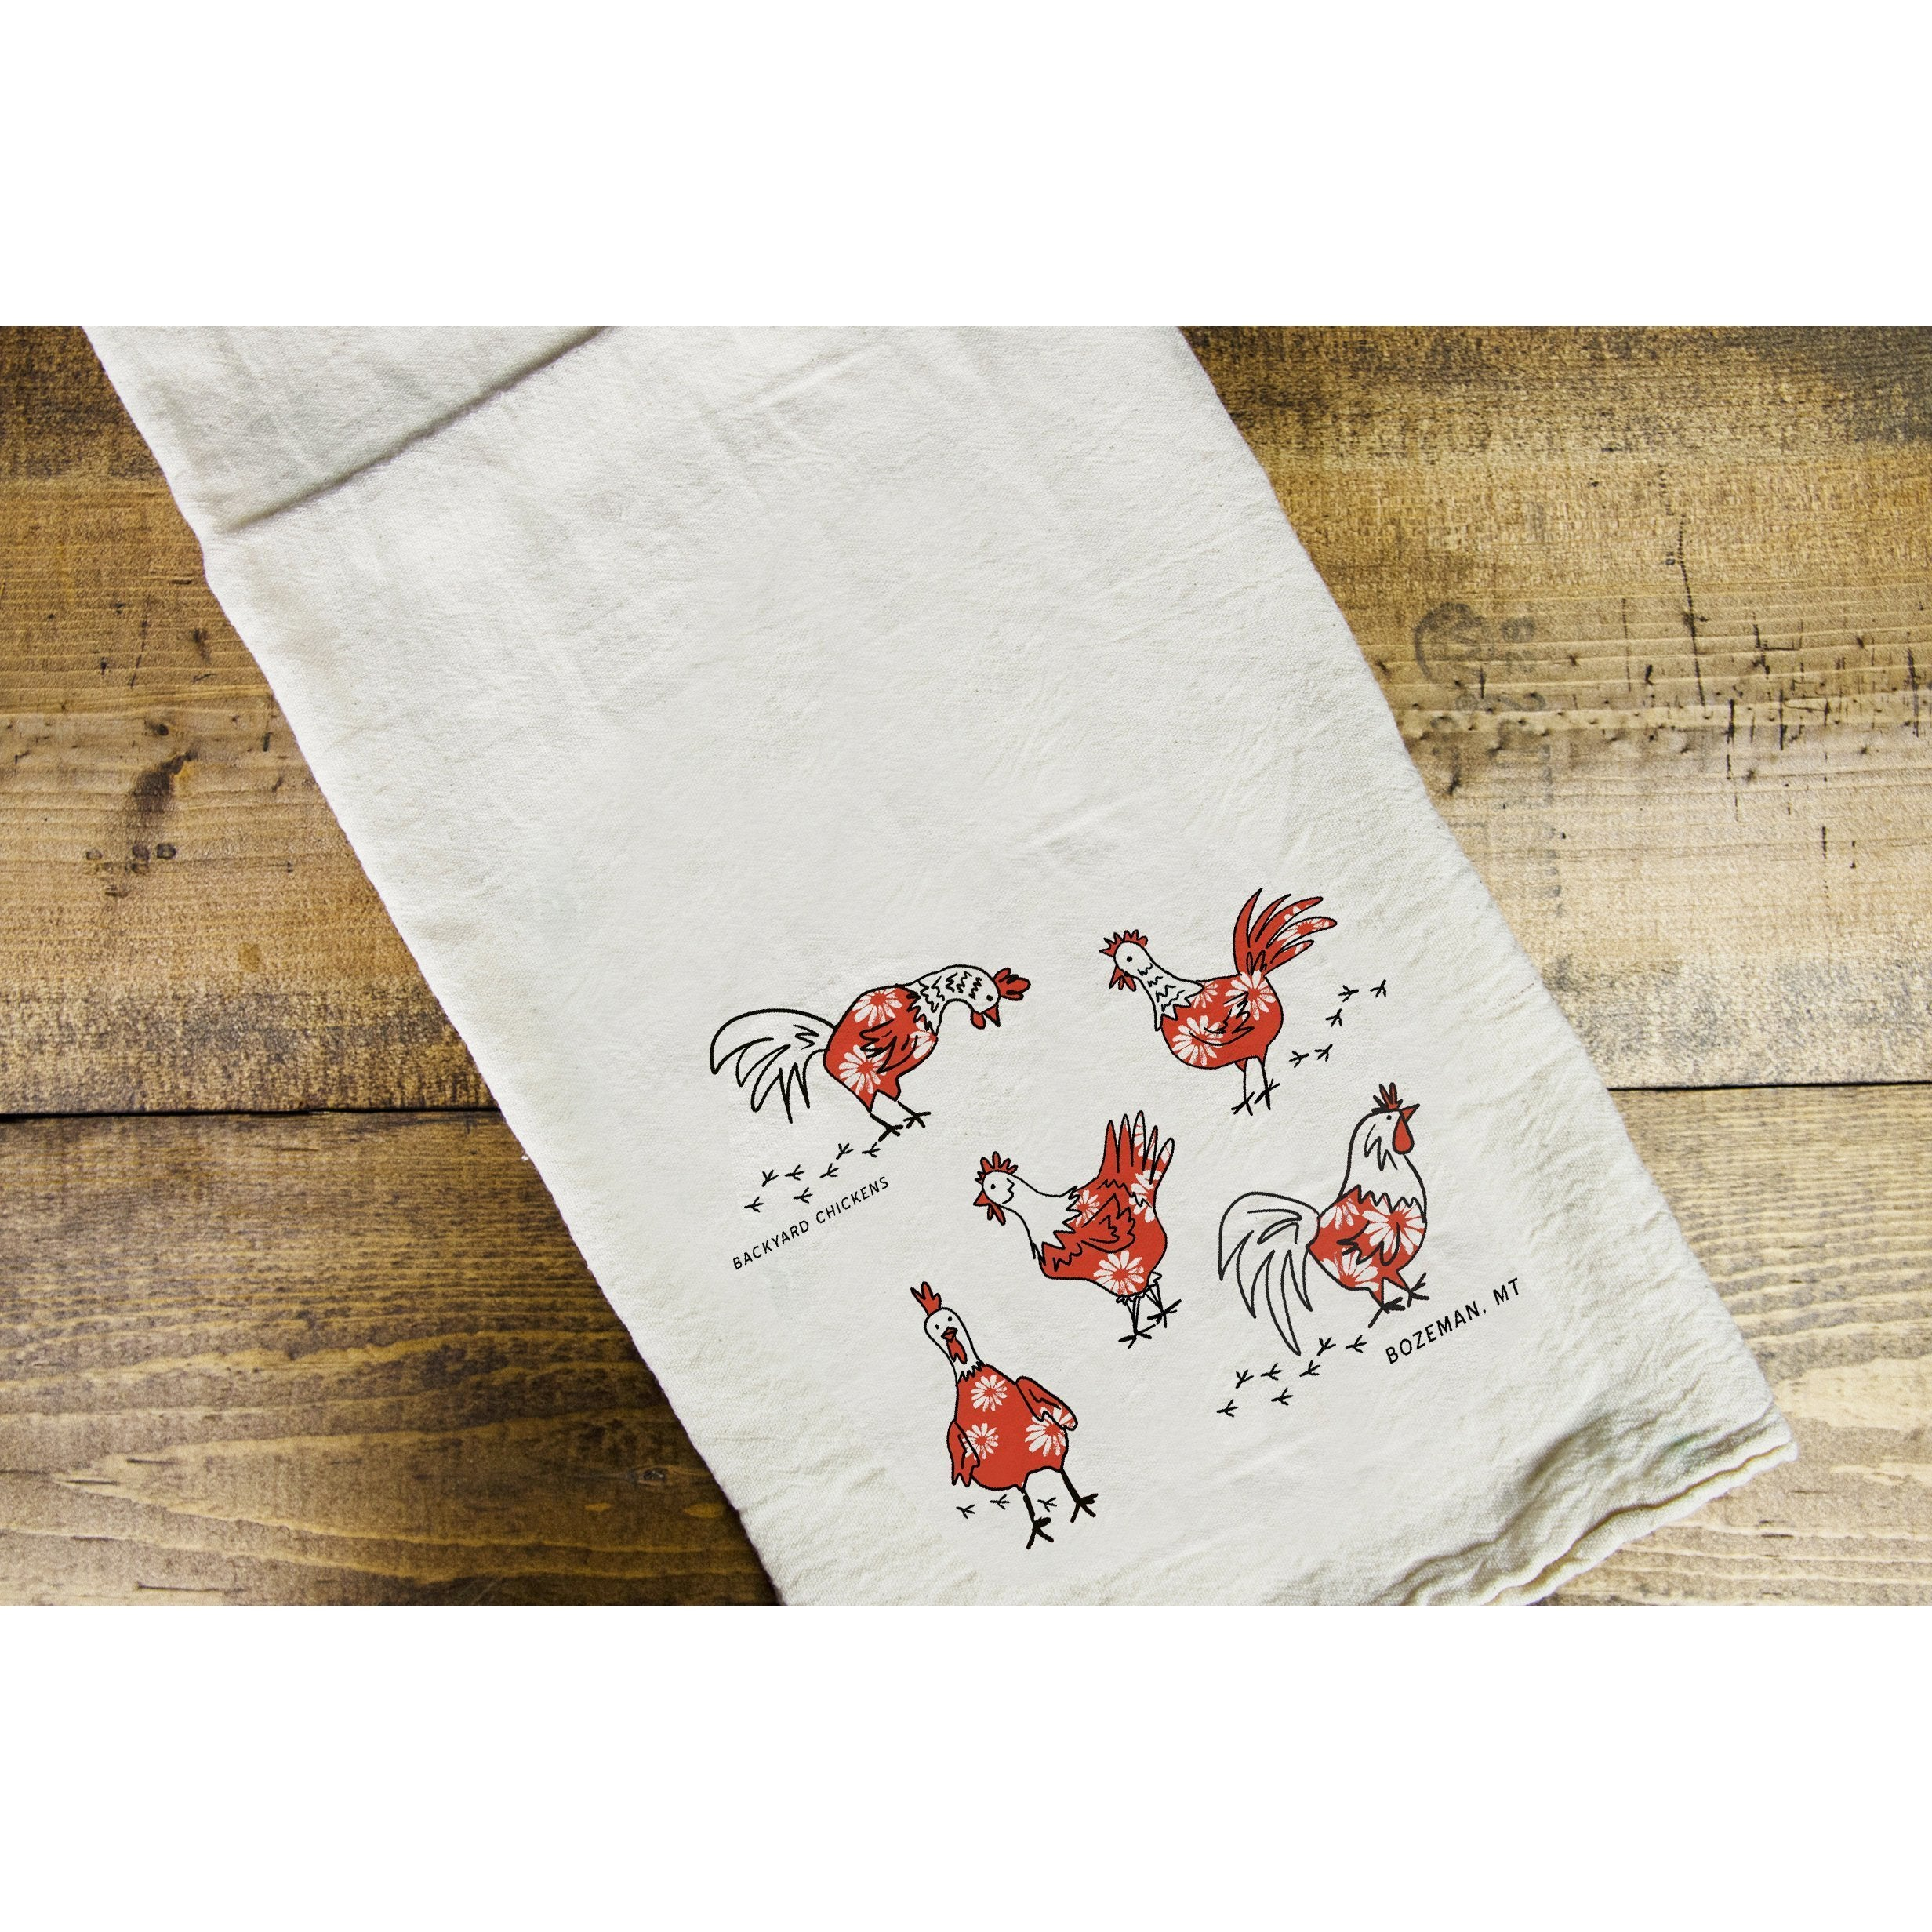 Backyard Chickens Dish Towel - Intrigue Ink Visit Bozeman, Unique Shopping Boutique in Montana, Work from Home Clothes for Women